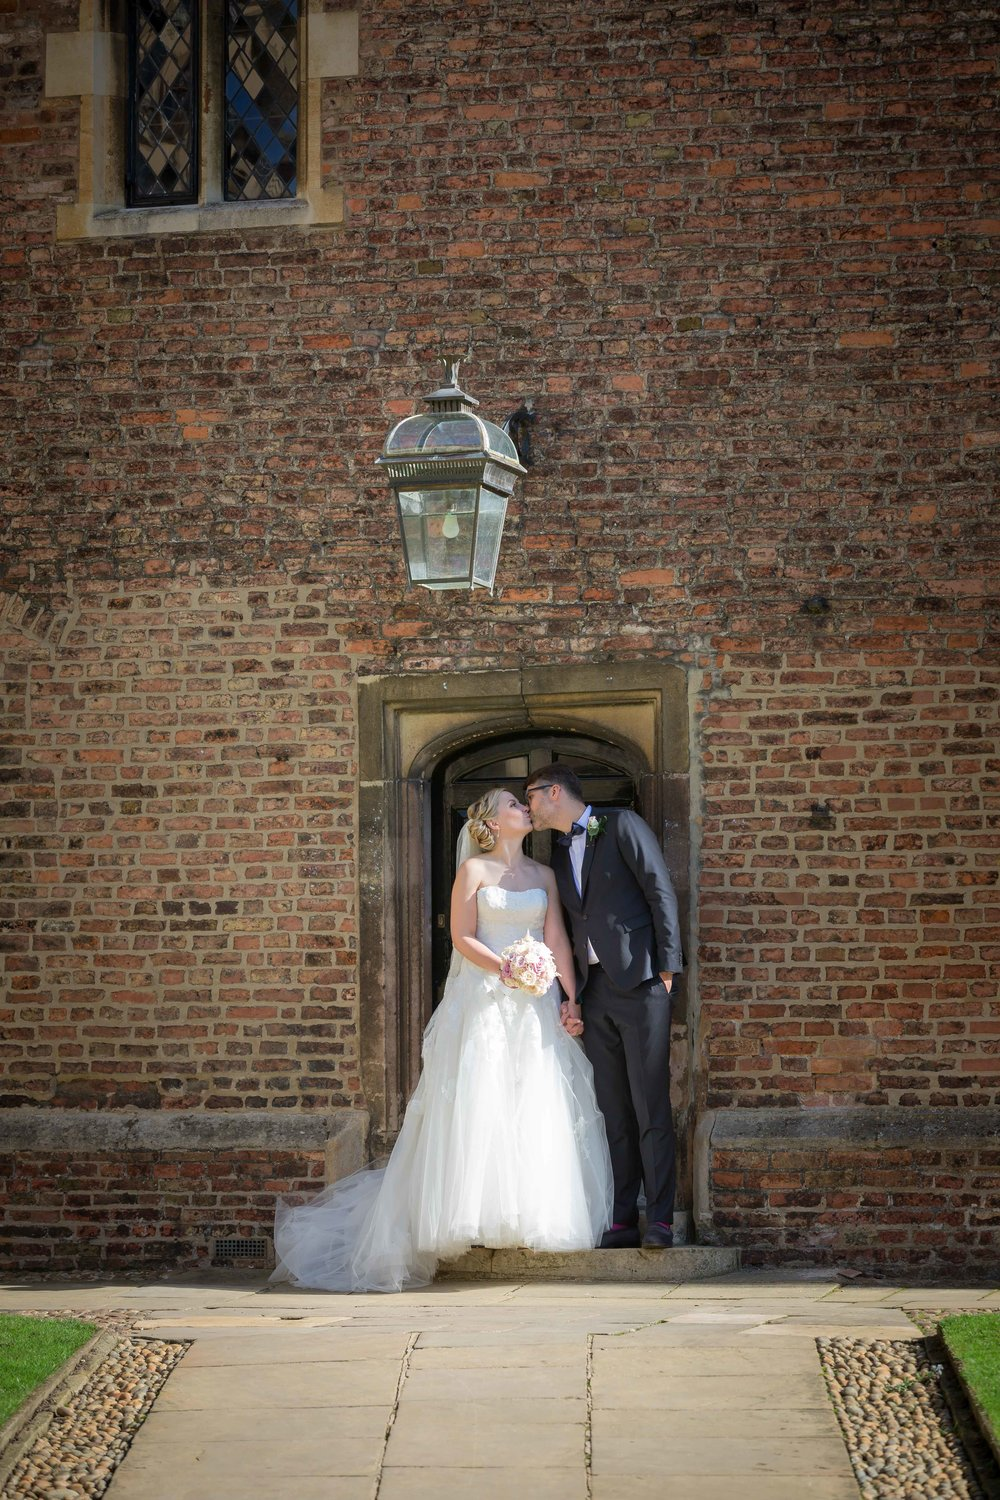 Adrian_Nicole_Charnwood_Weddings_Queens_College_Cambridge-1032.jpg